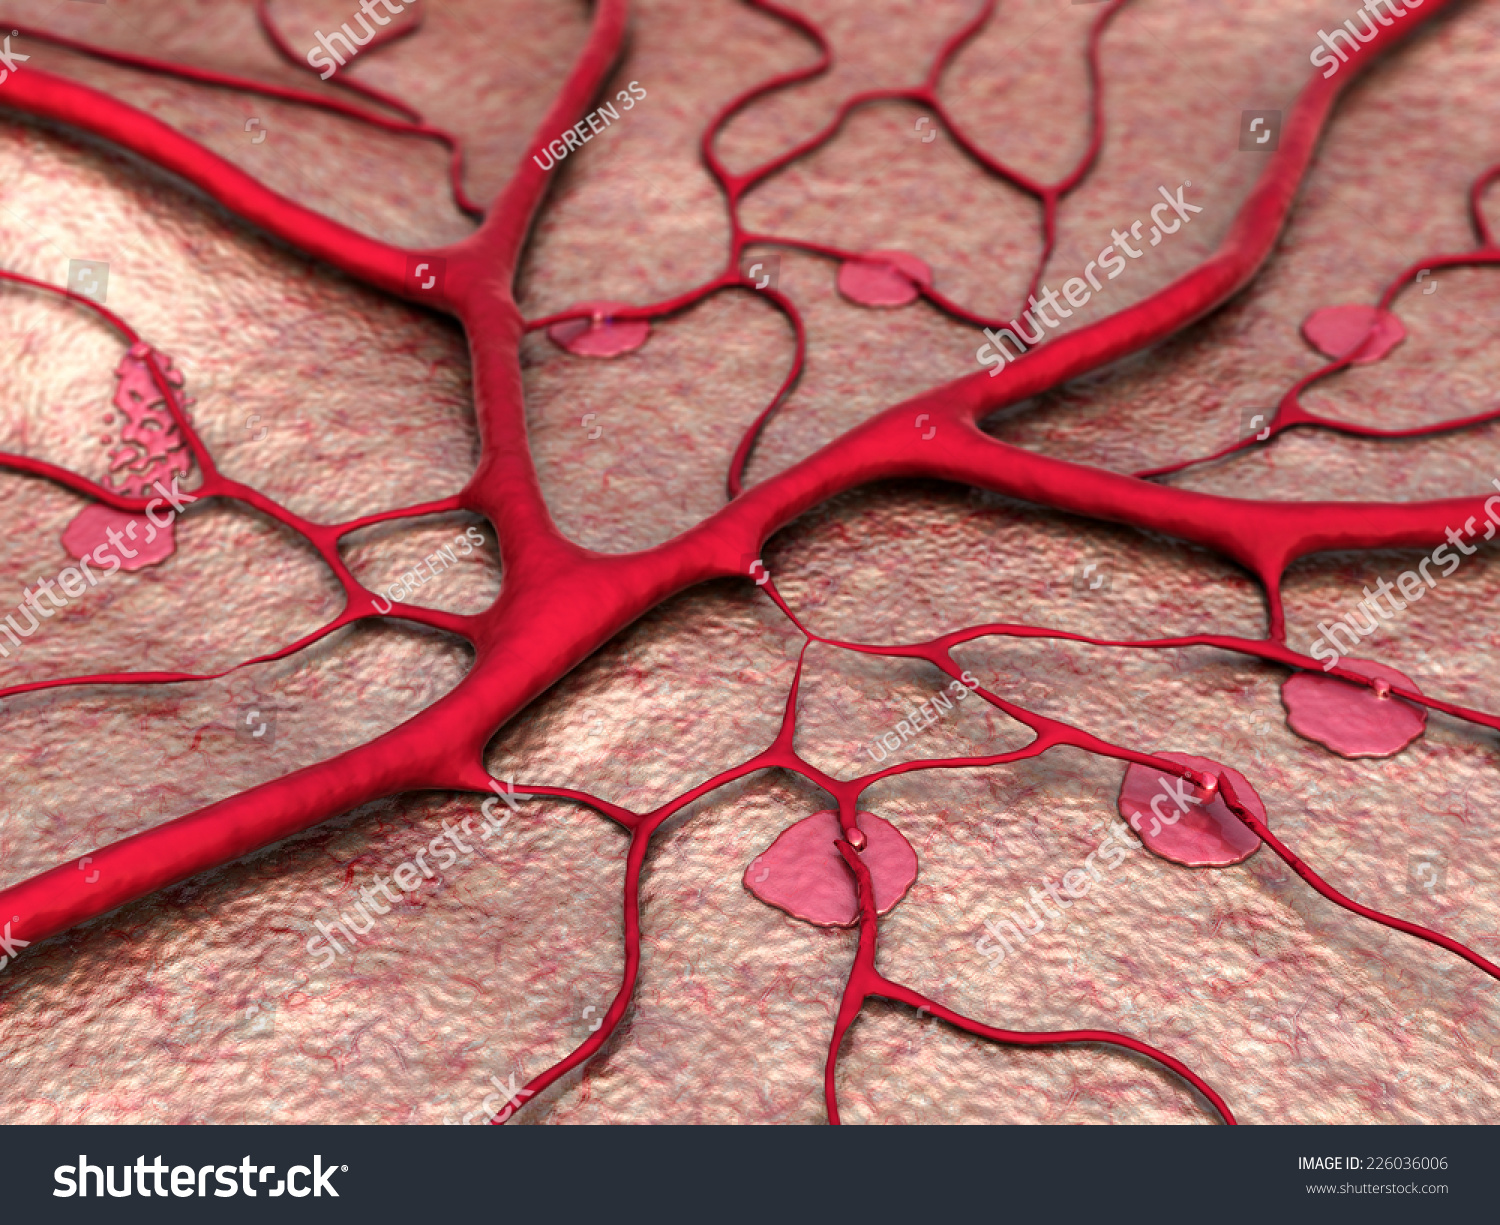 Circulatory System Disease Heart Attack Capillary Stock Illustration